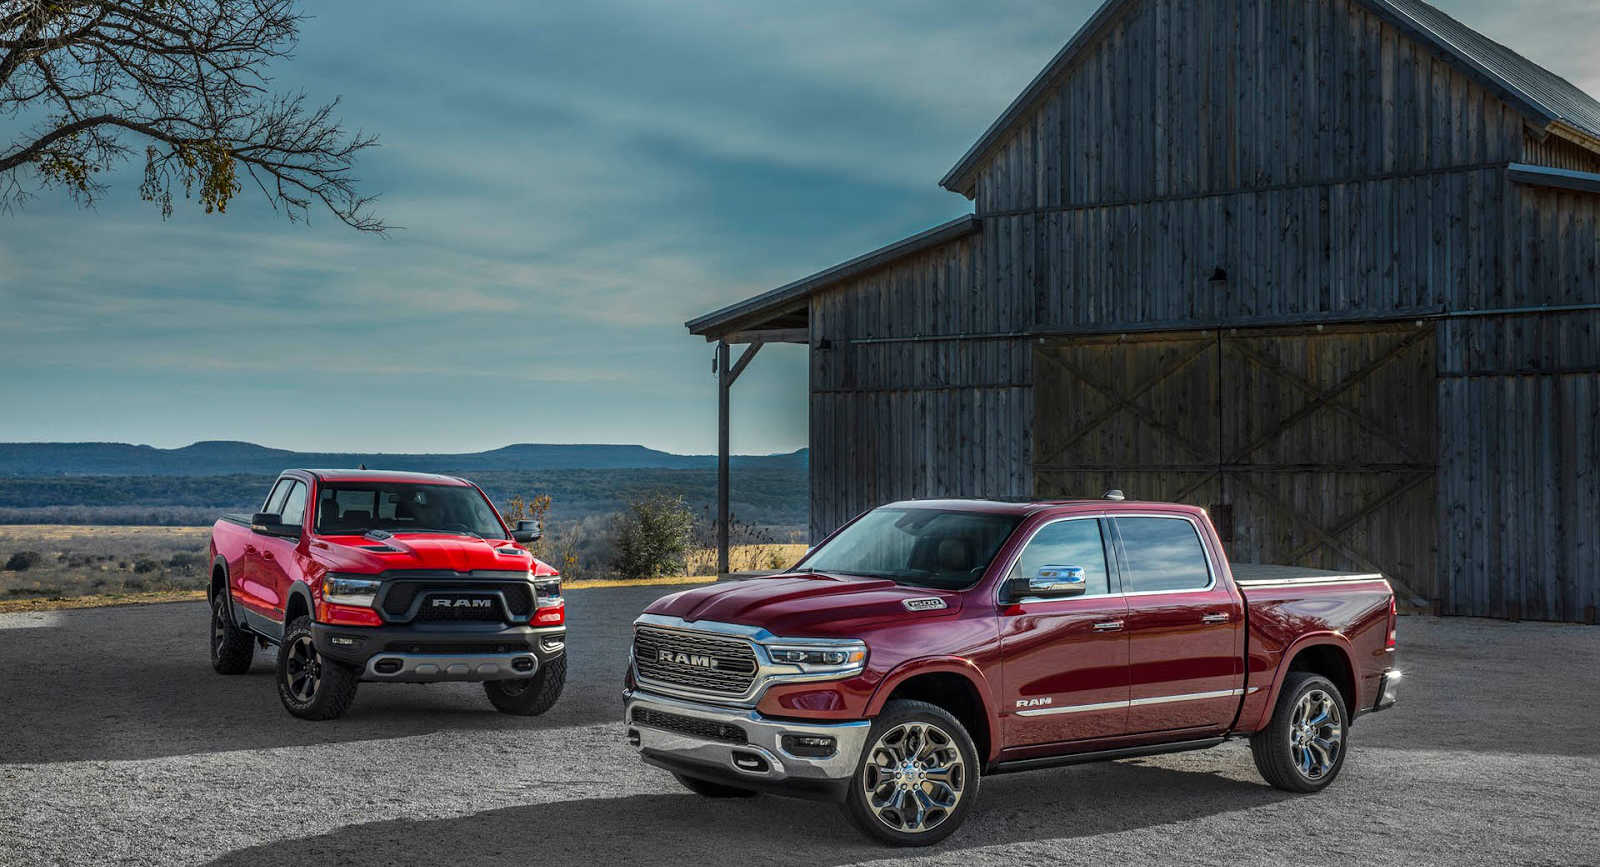 New Ram 1500 V6 Ecodiesel Reportedly Coming Later This Year Carmojo The Upcoming Ram 1500 Ecodiesel Should Have A 3 Ram 1500 2019 Ram 1500 Dodge Ram 1500